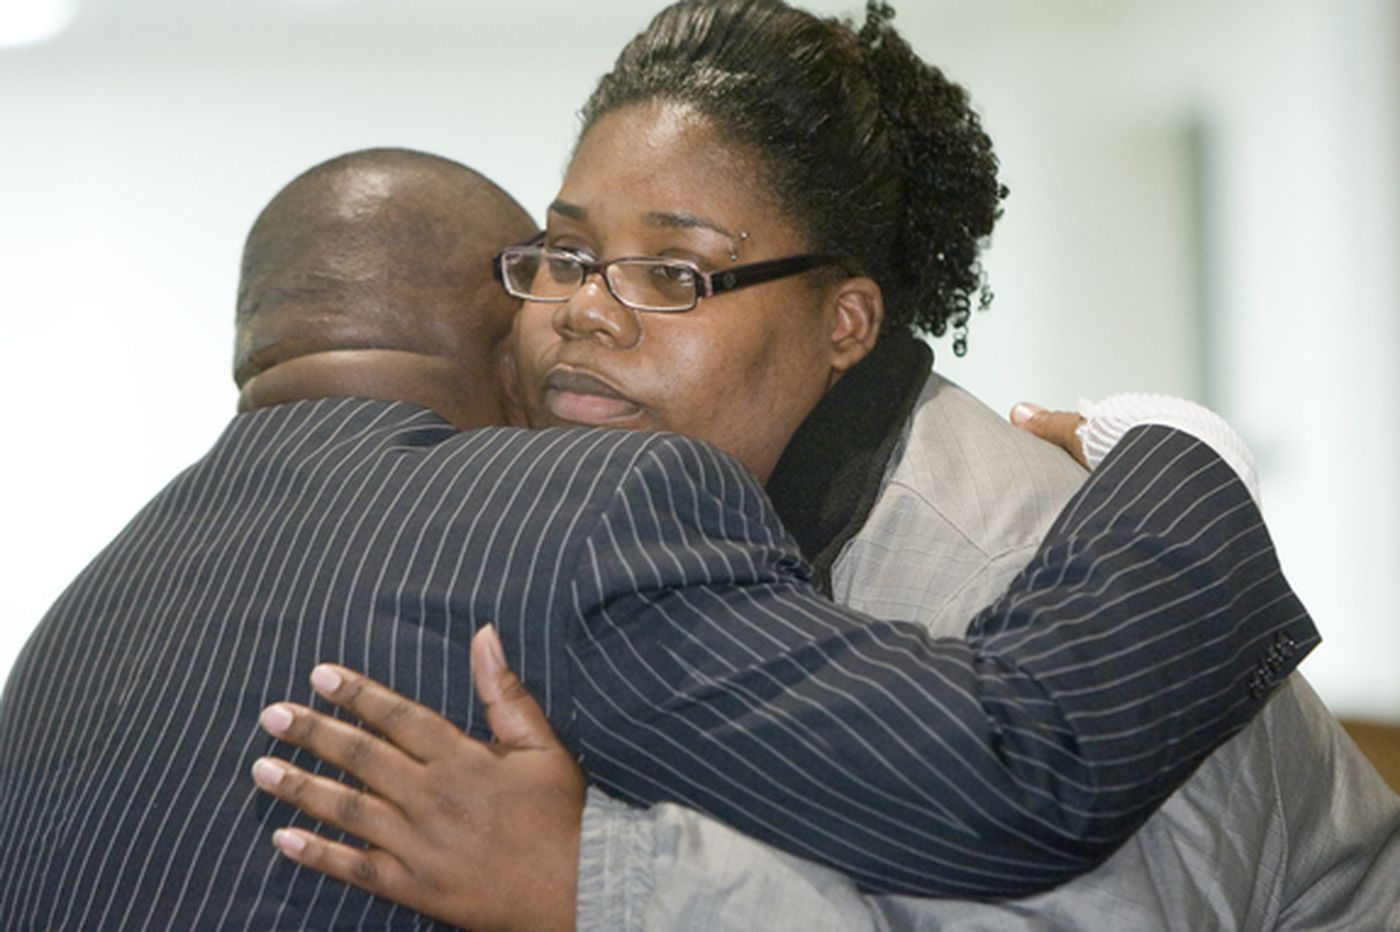 Community mourns 7 victims of house fire